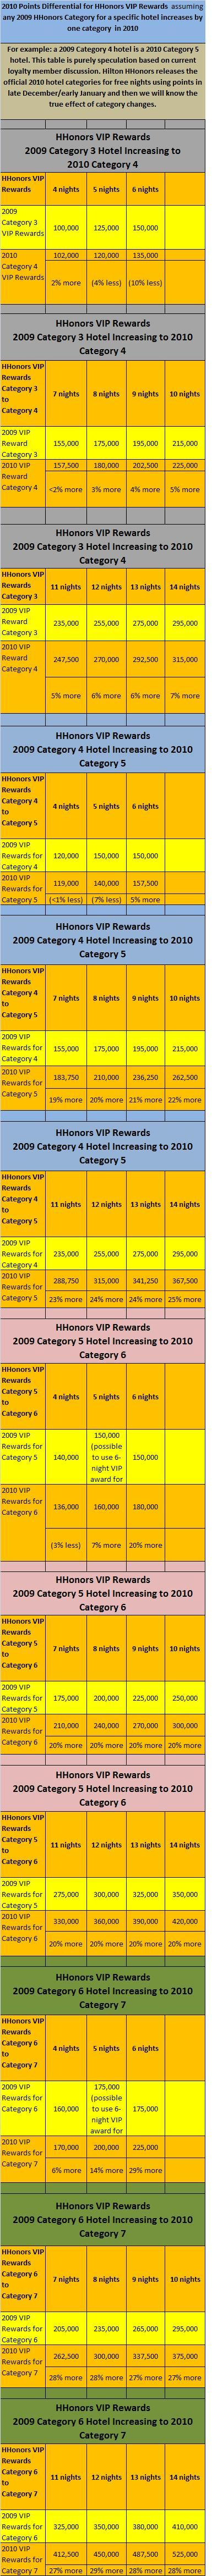 HHonors VIP Awards in 2010 for a hotels one category higher than 2009